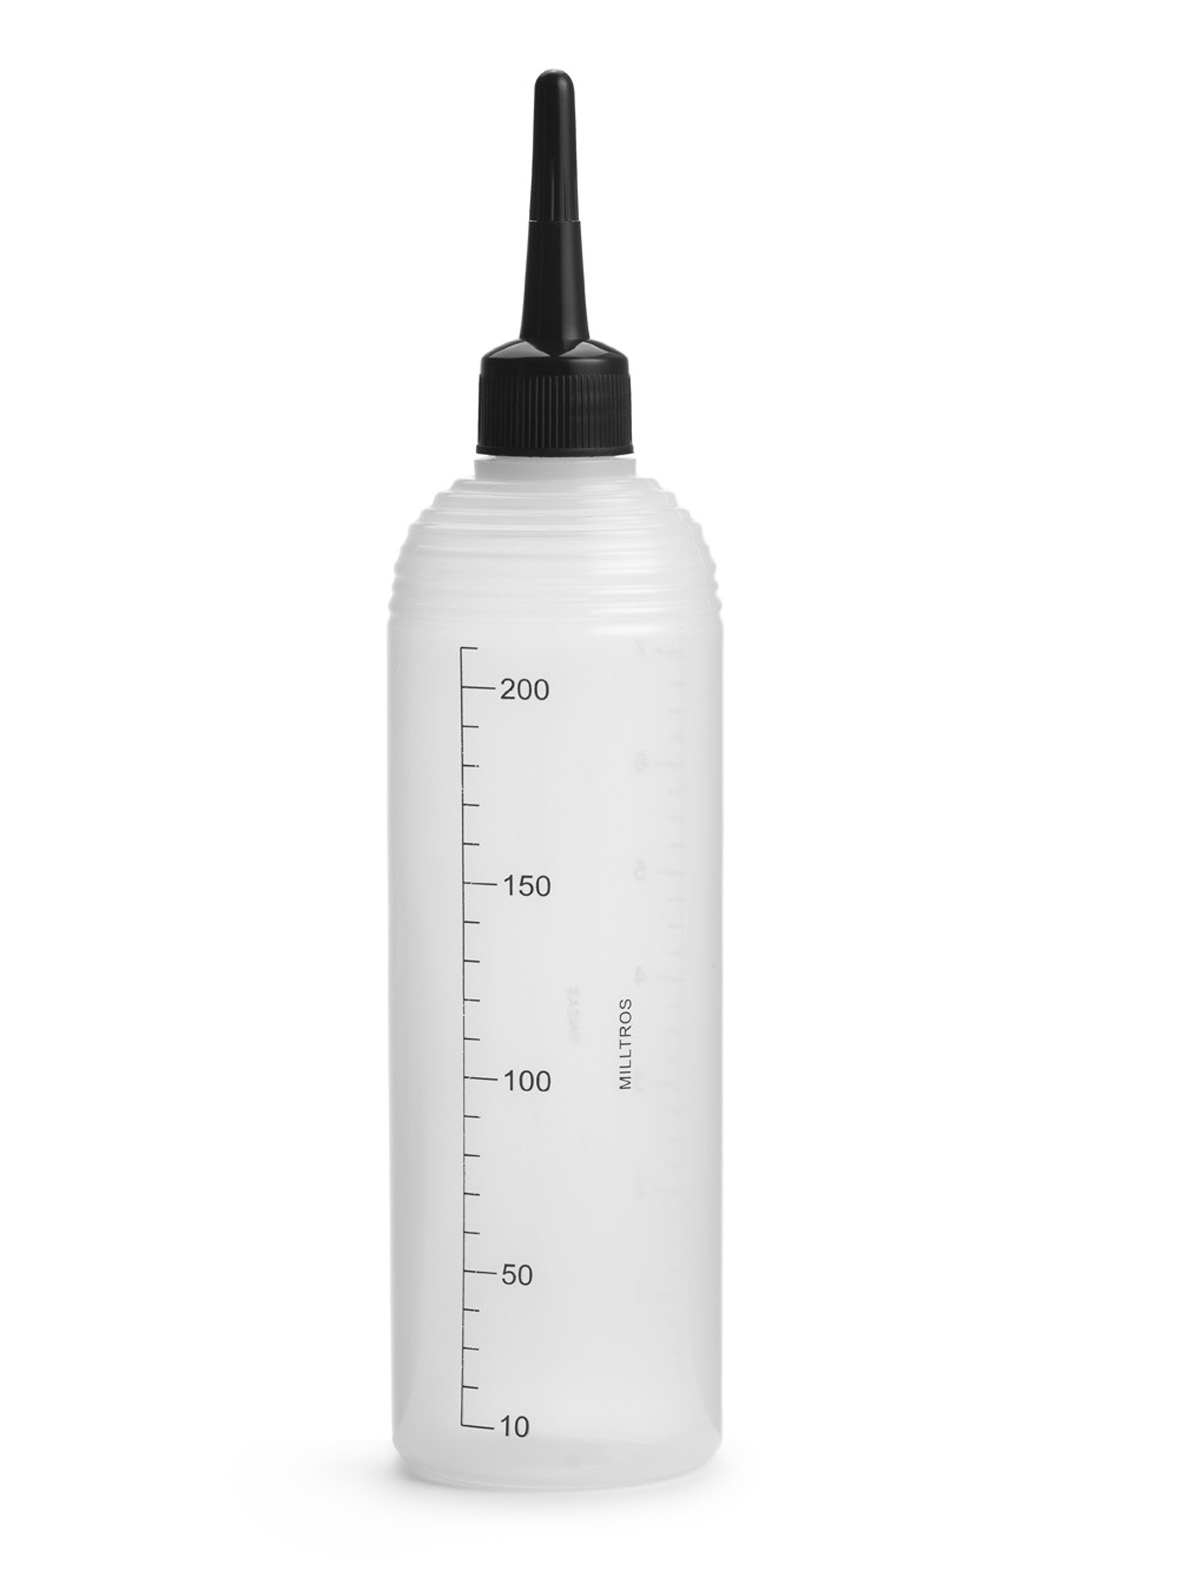 BraveHead Application Bottle 9314 - aplikačná fľaša, 200 ml